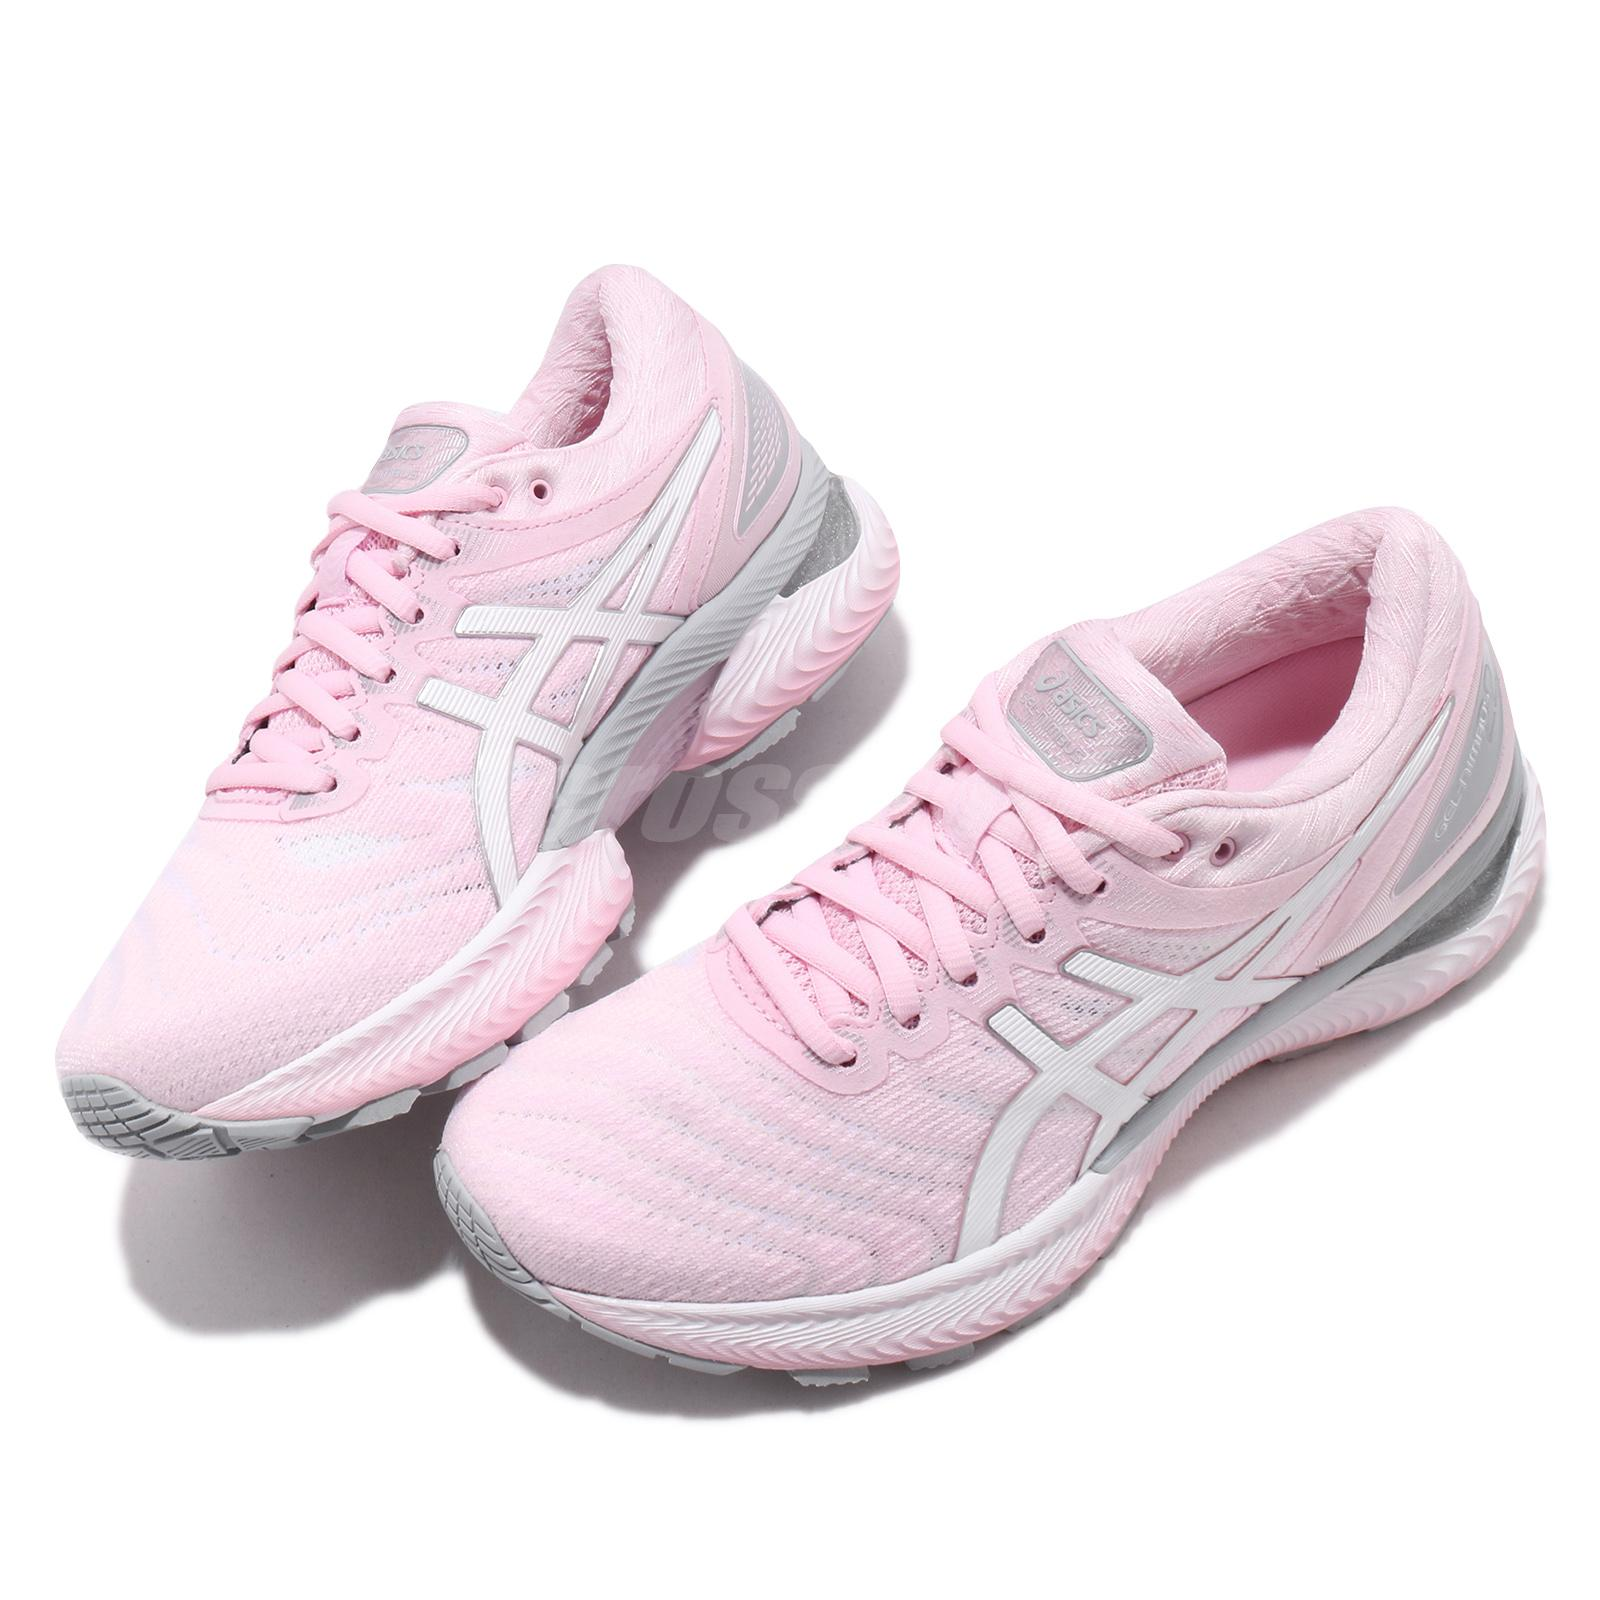 Details about Asics Gel-Nimbus 22 Cotton Candy Pink White Women Running  Shoes 1012A587-700